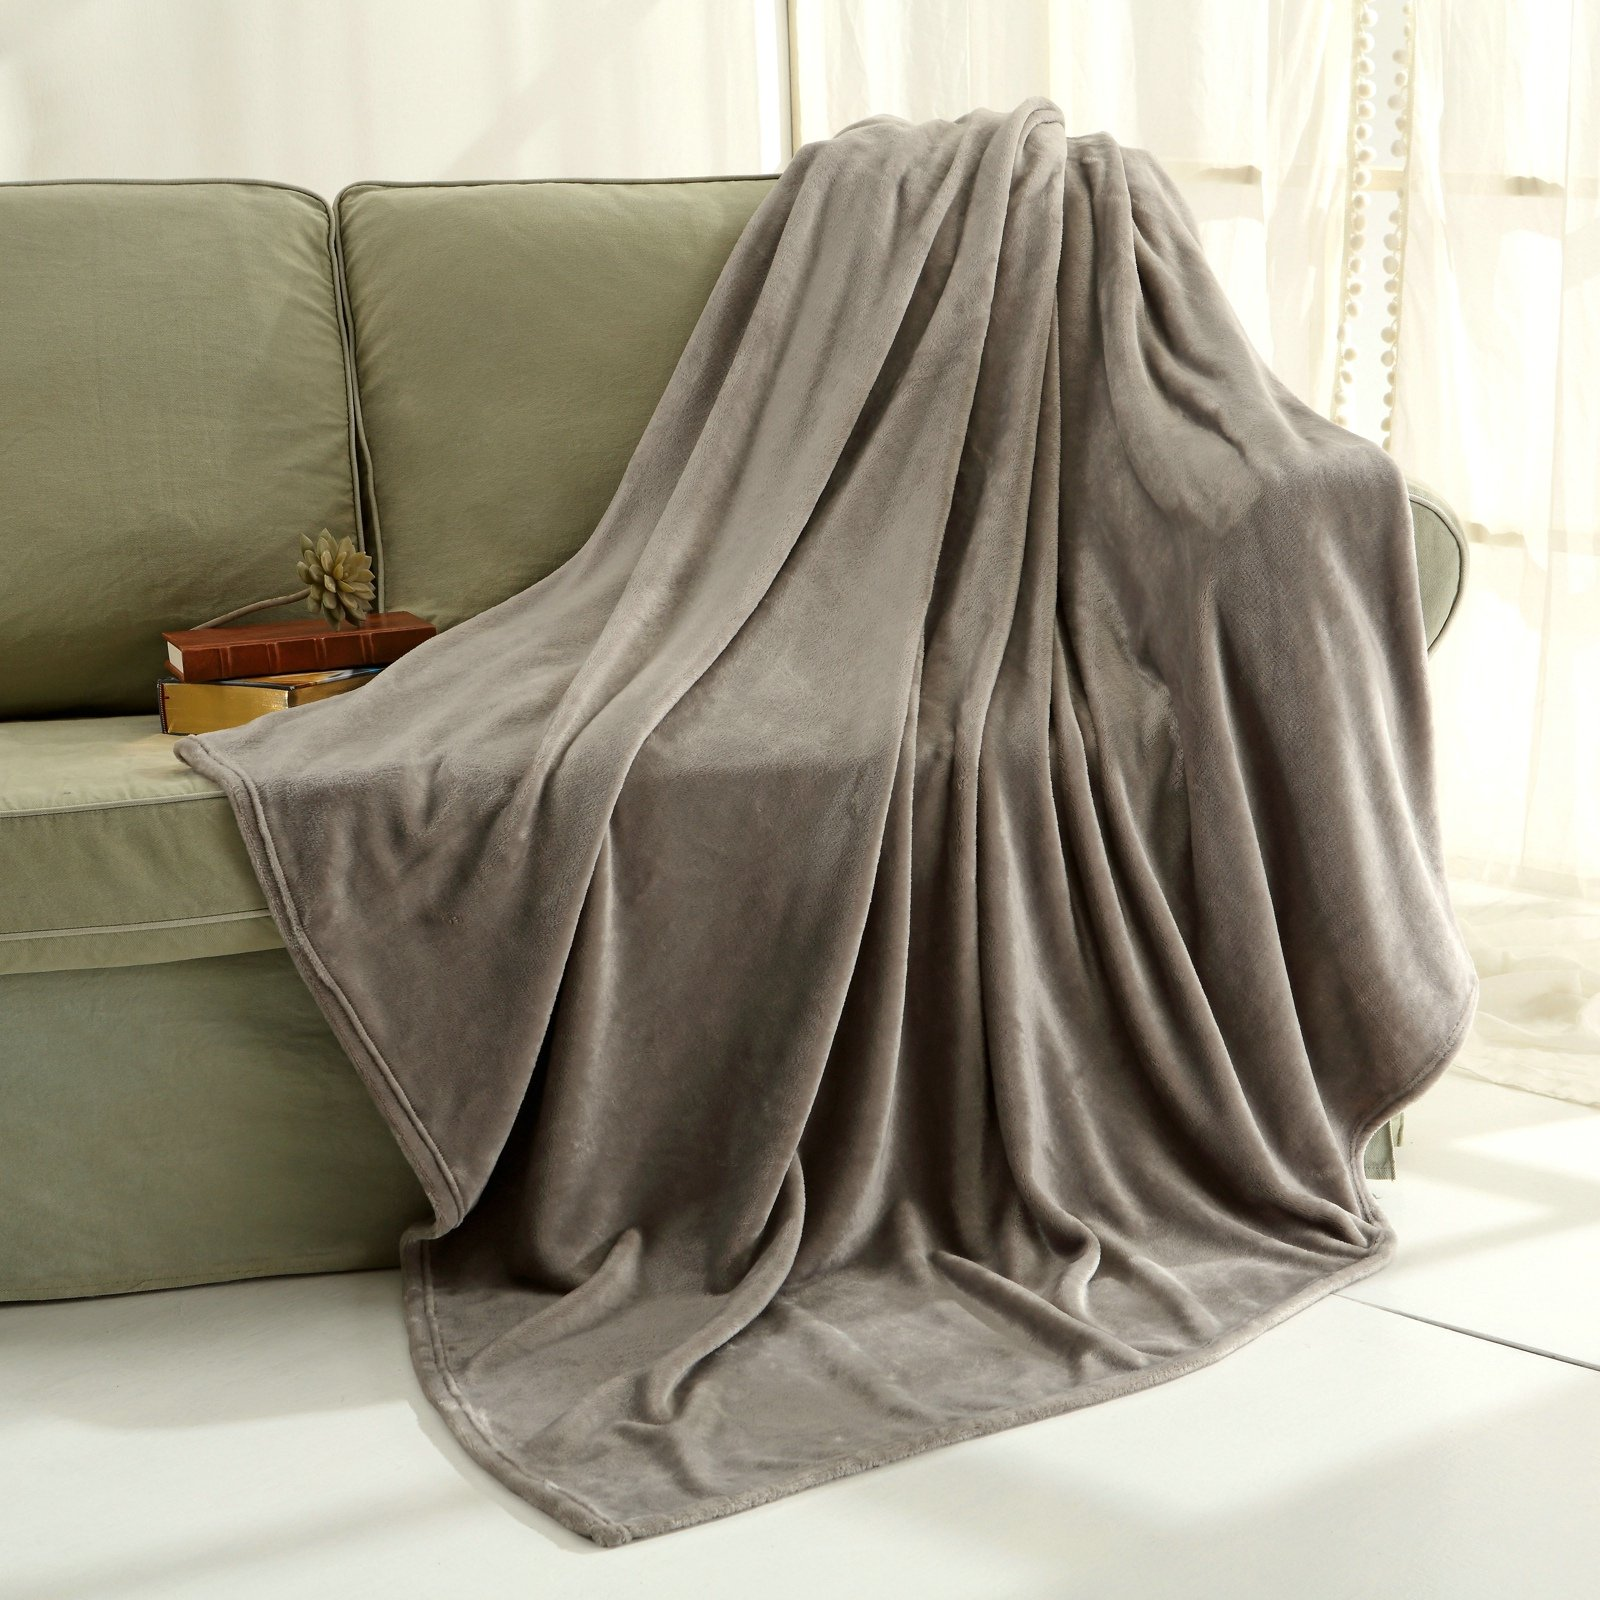 Big Couch Throw Cheap Big Throw Blankets Find Big Throw Blankets Deals On Line At